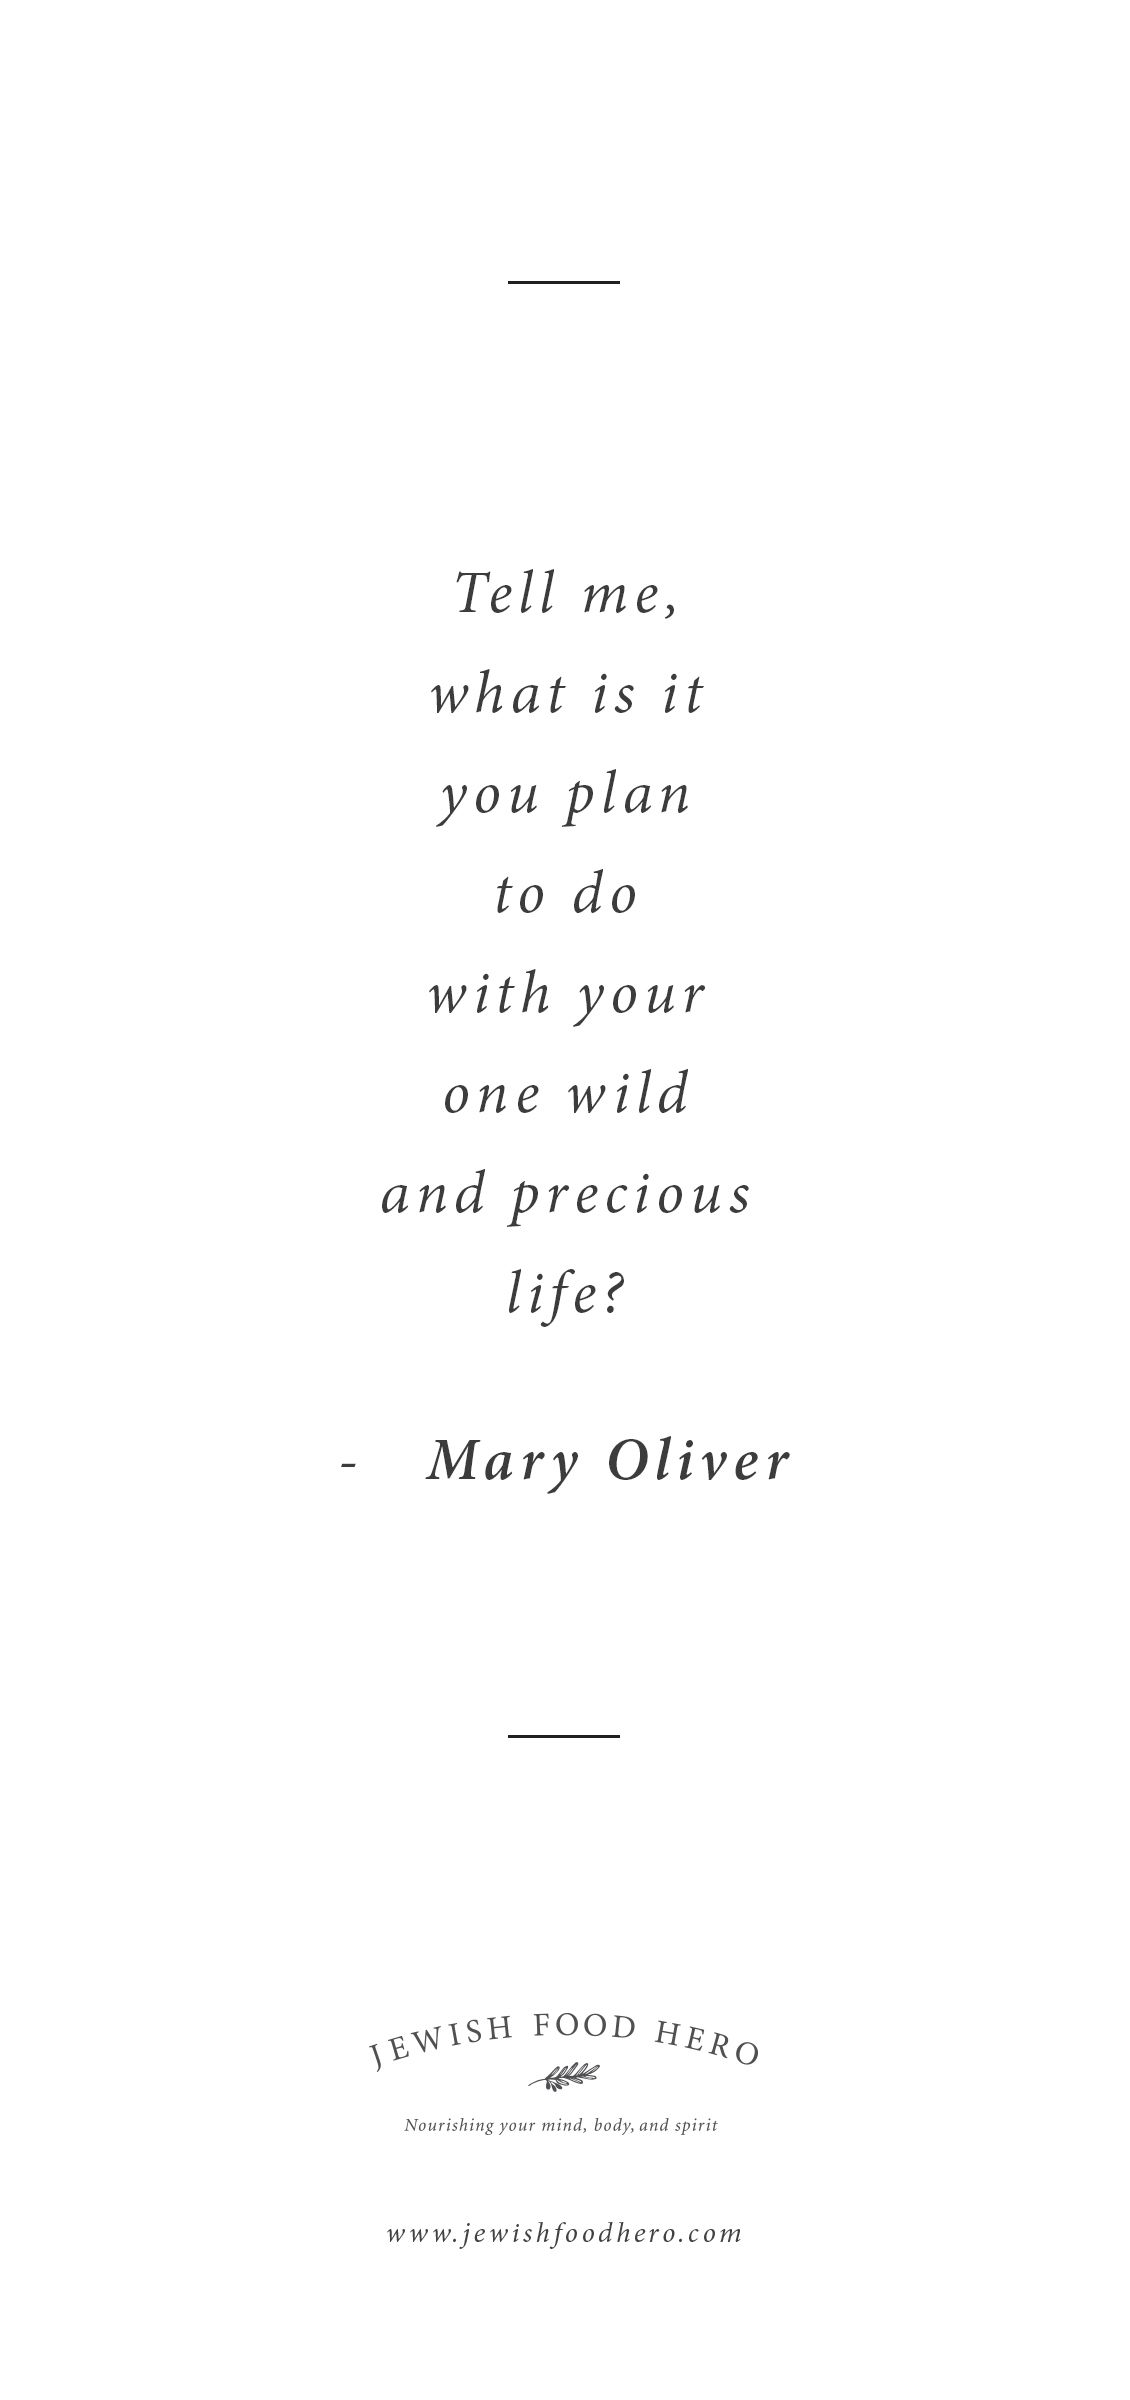 Jewish Love Quotes Mary Oliver Quotation  Inspiring Quotes  Pinterest  Mary Oliver